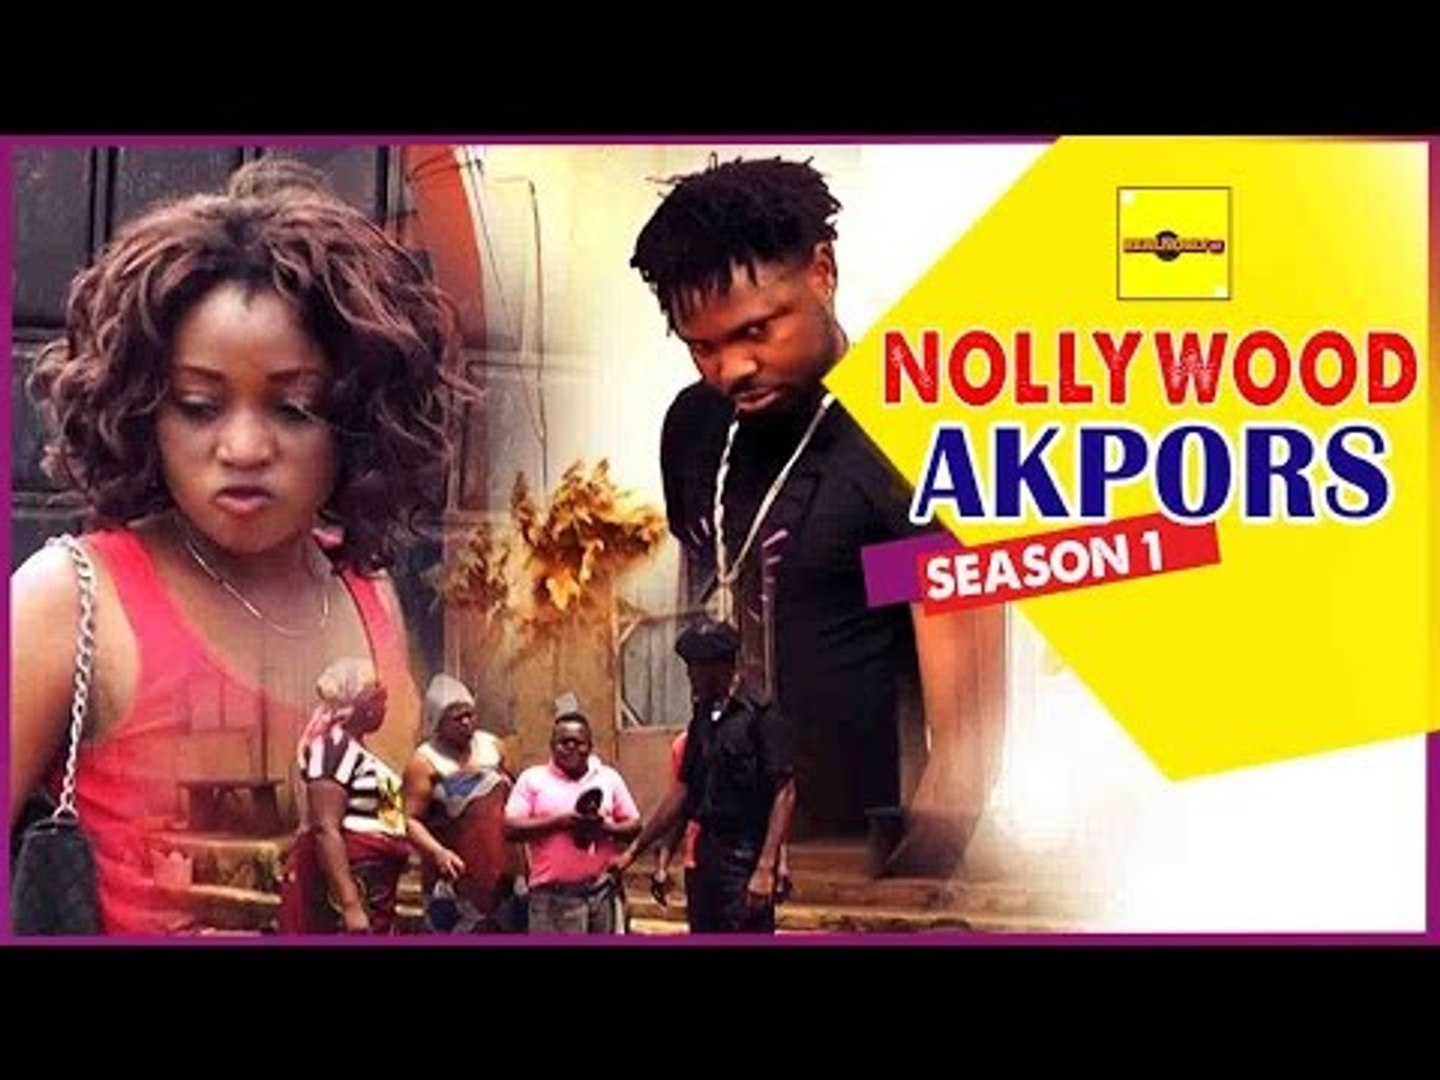 Nigerian Nollywood Movies - Nollywood Akpors 1